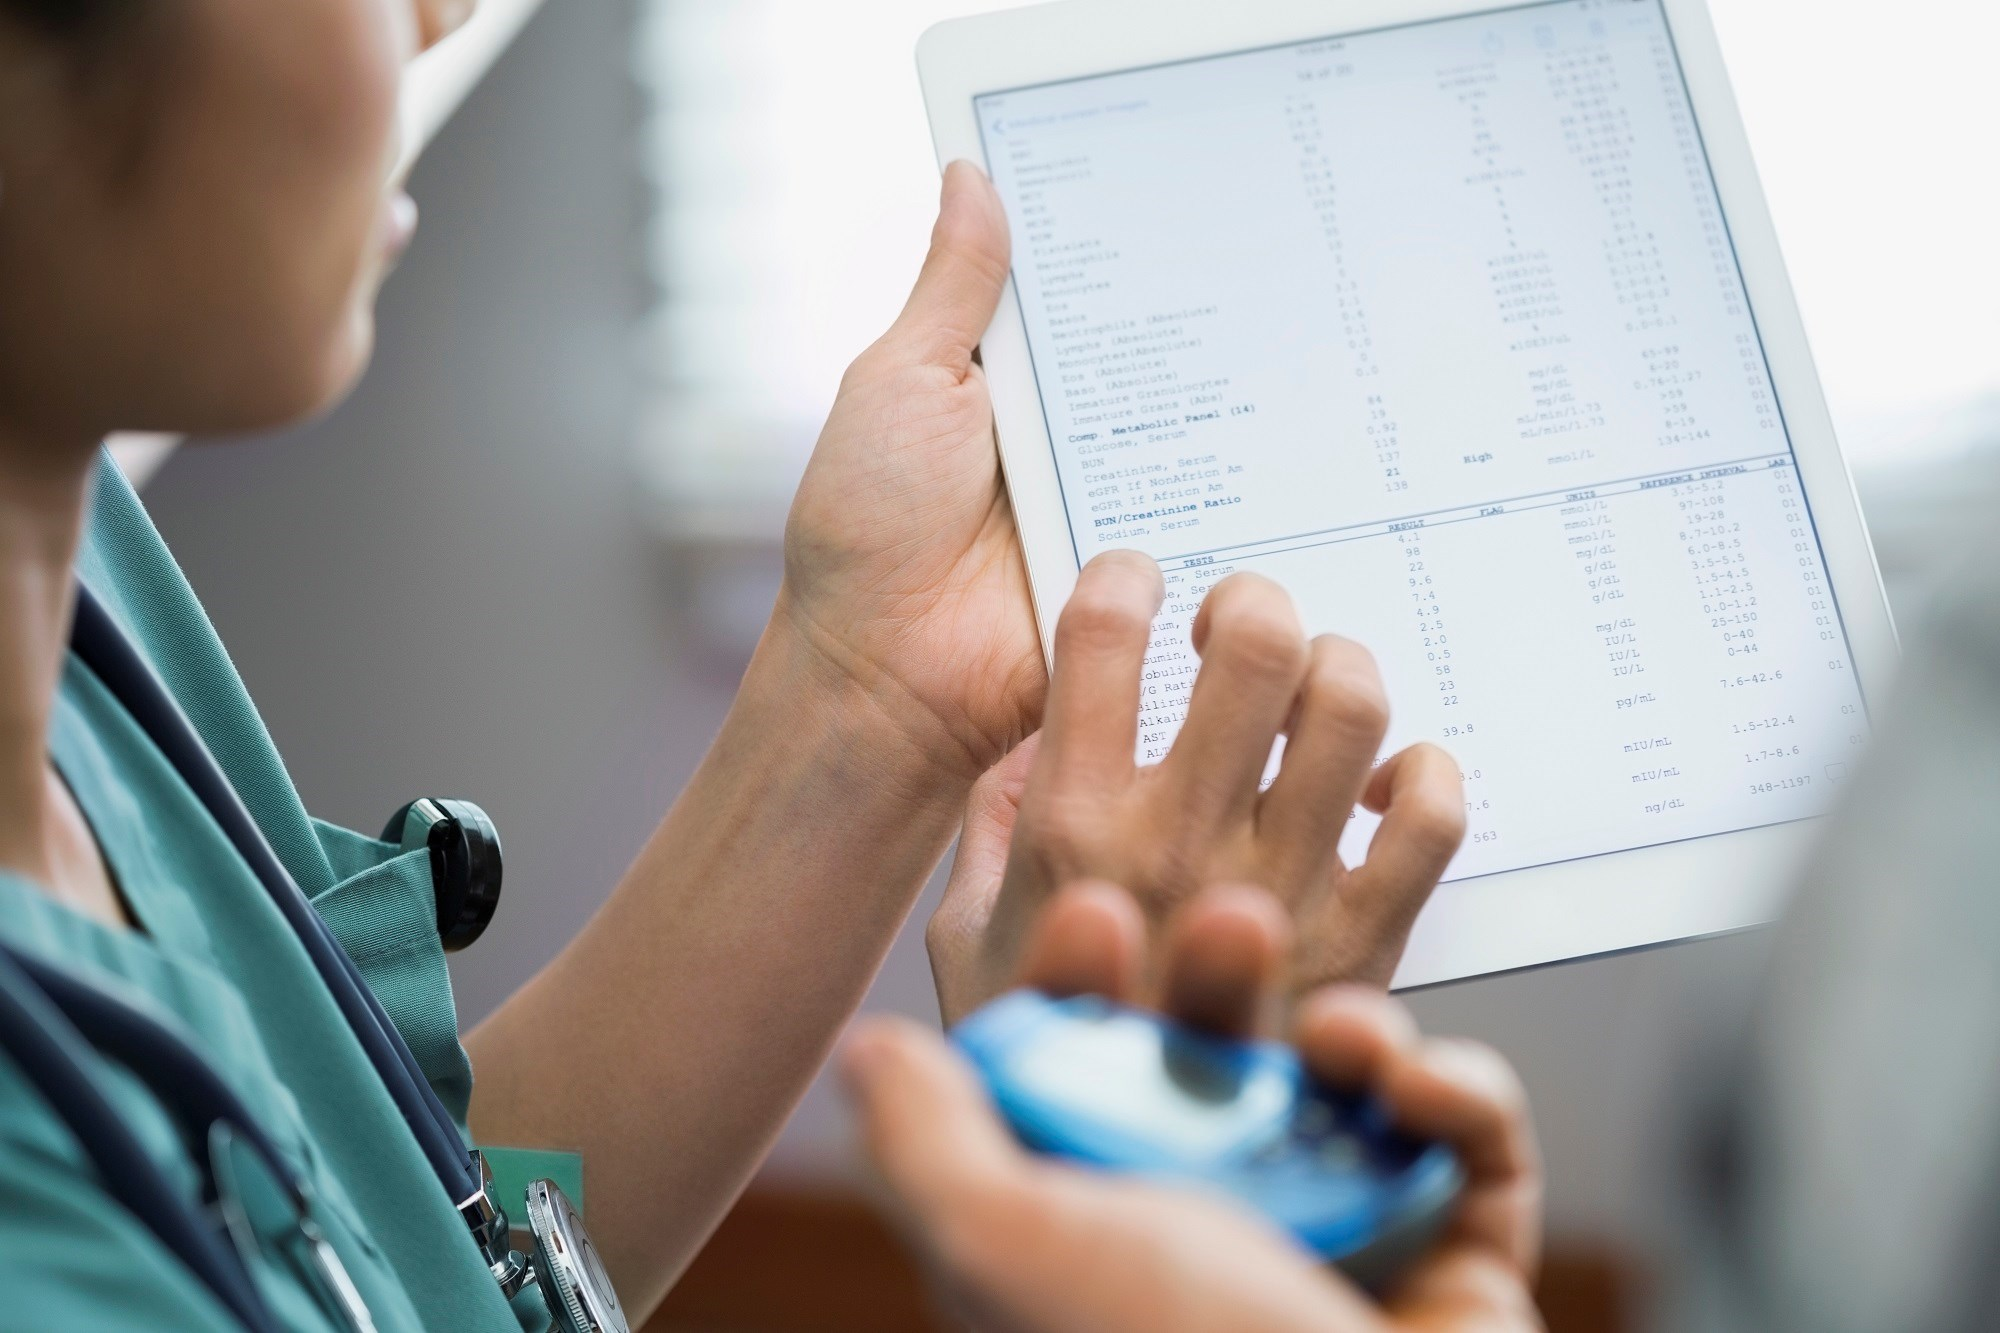 Steps Taken to Increase Use of Electronic Tools in Medicine